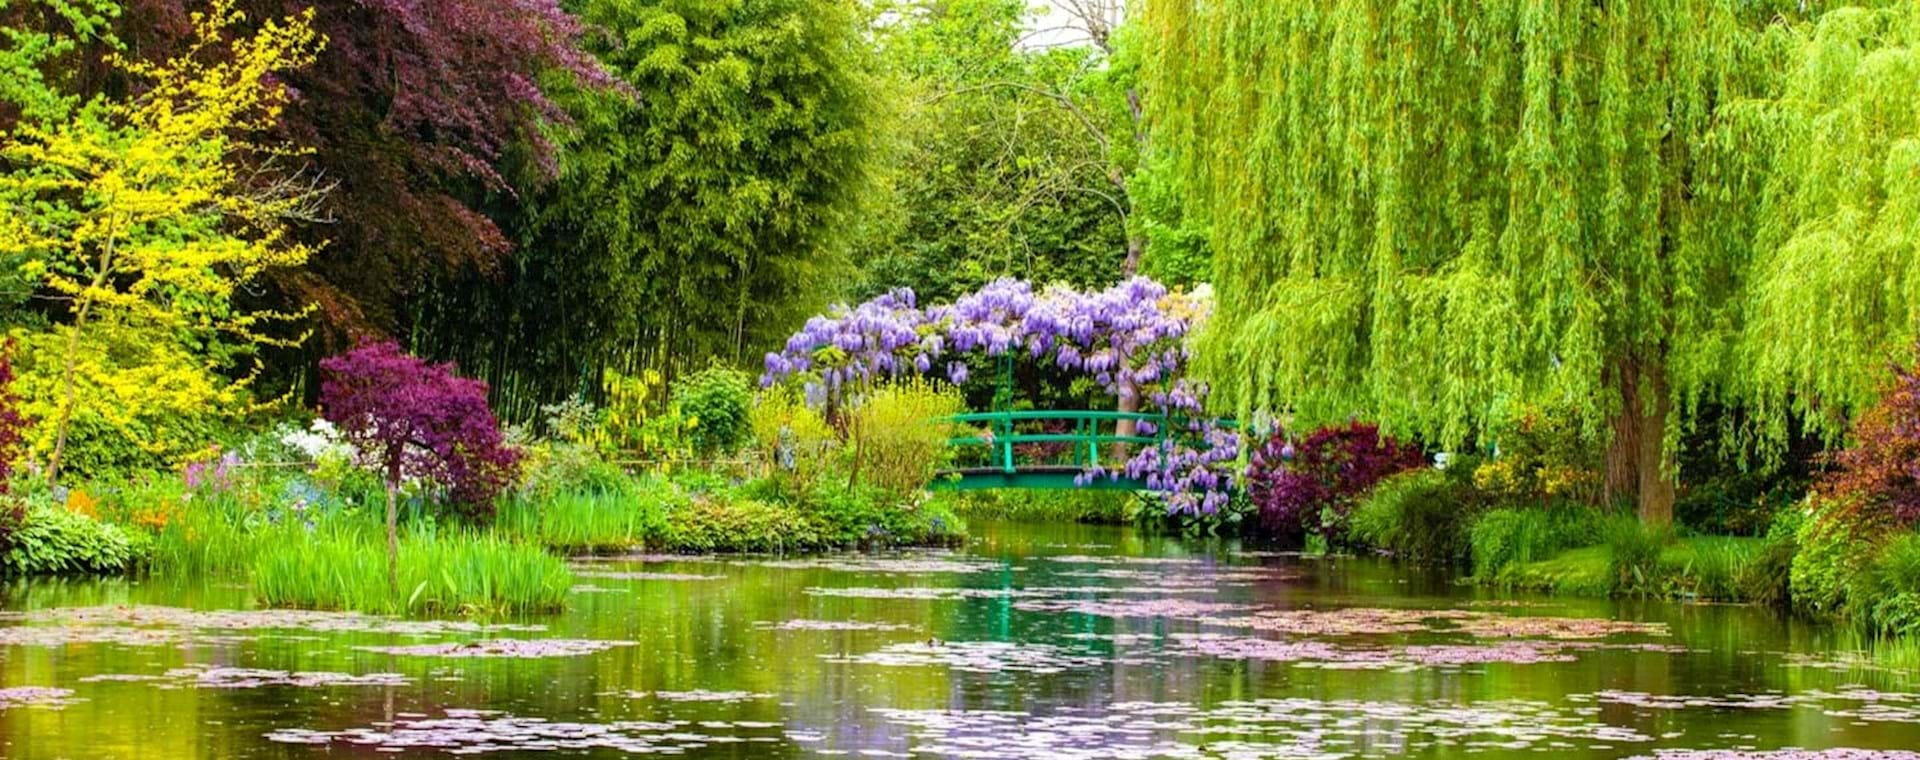 Full Day Monet's Giverny & Versailles Palace Tour with Fountain Show from Paris